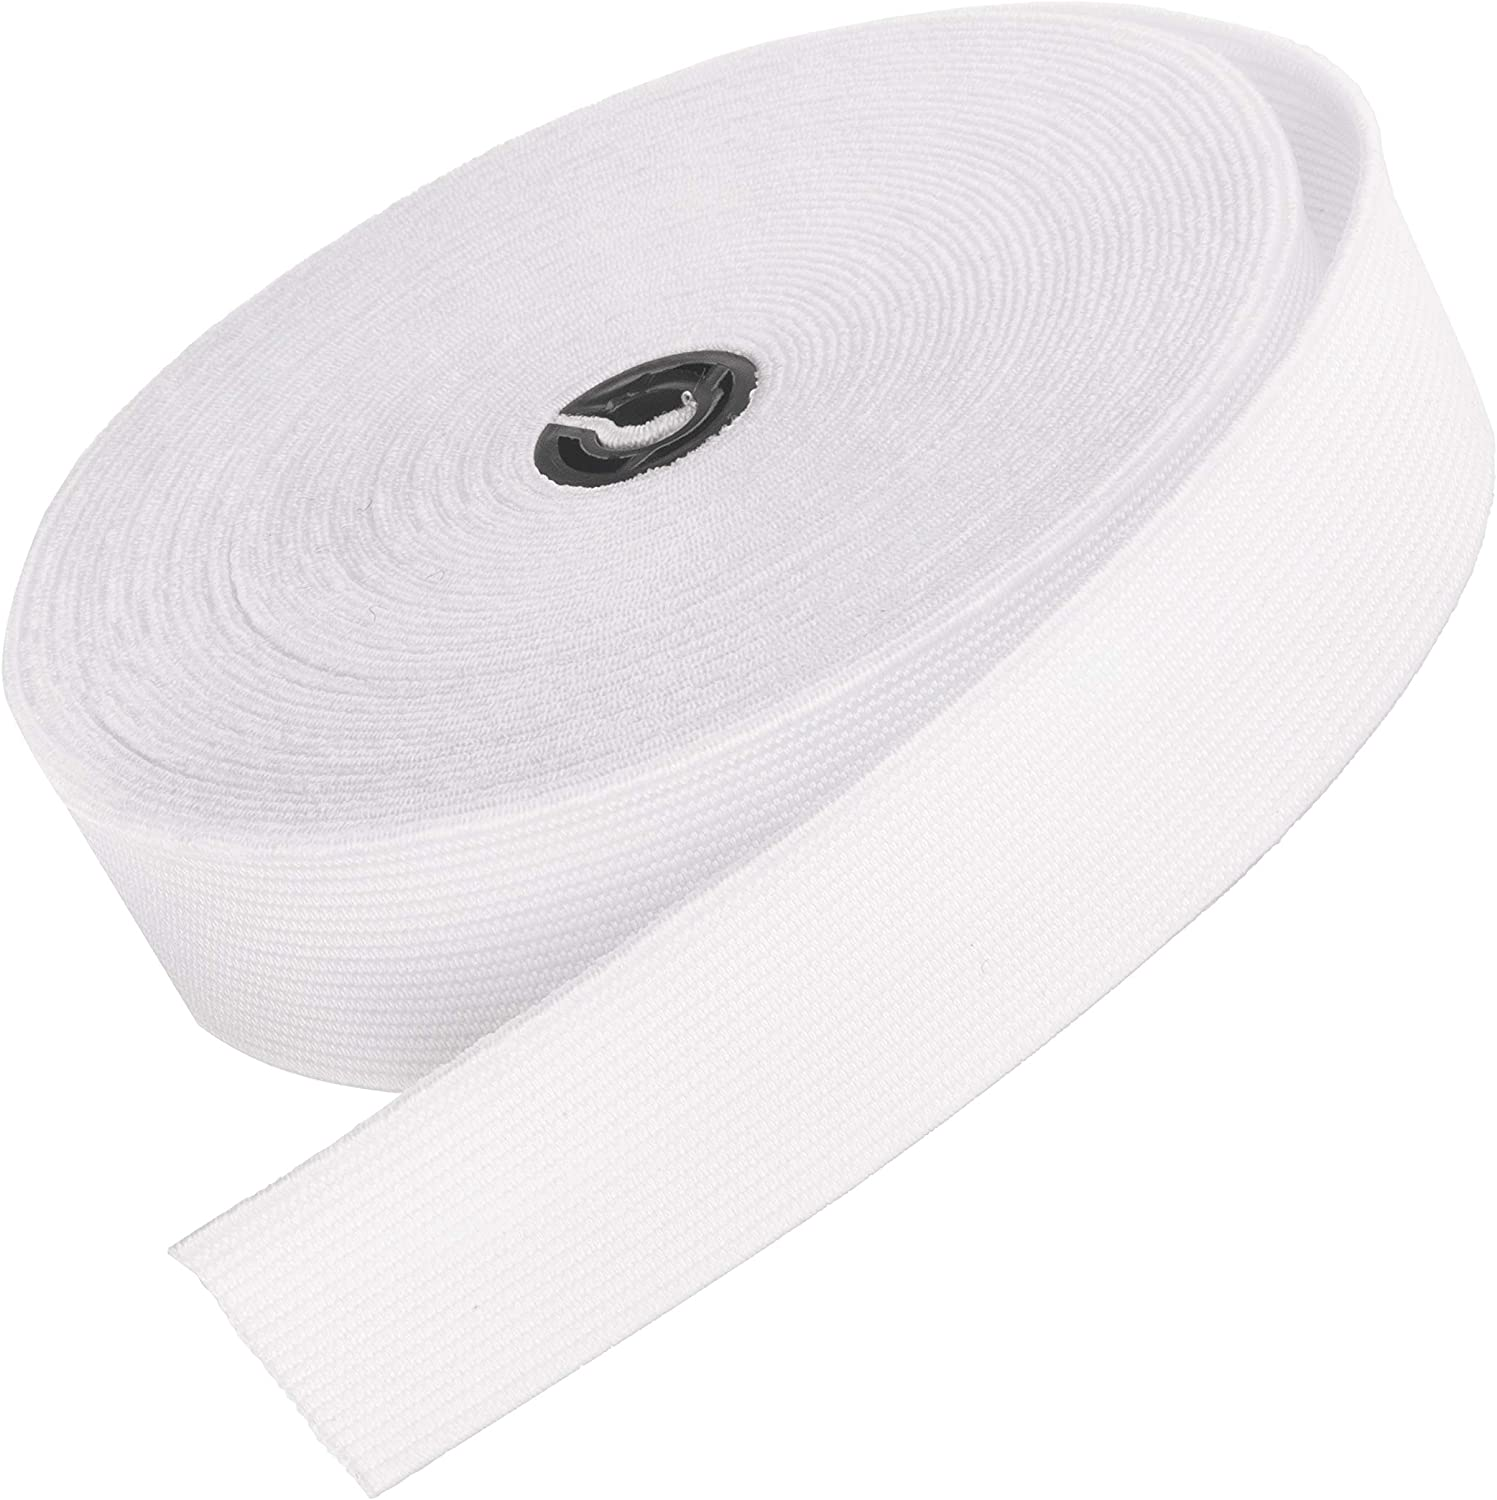 6 cord ELASTIC WHITE CRAFTS SEWING DRESS MAKING 15 METRE  free postage New